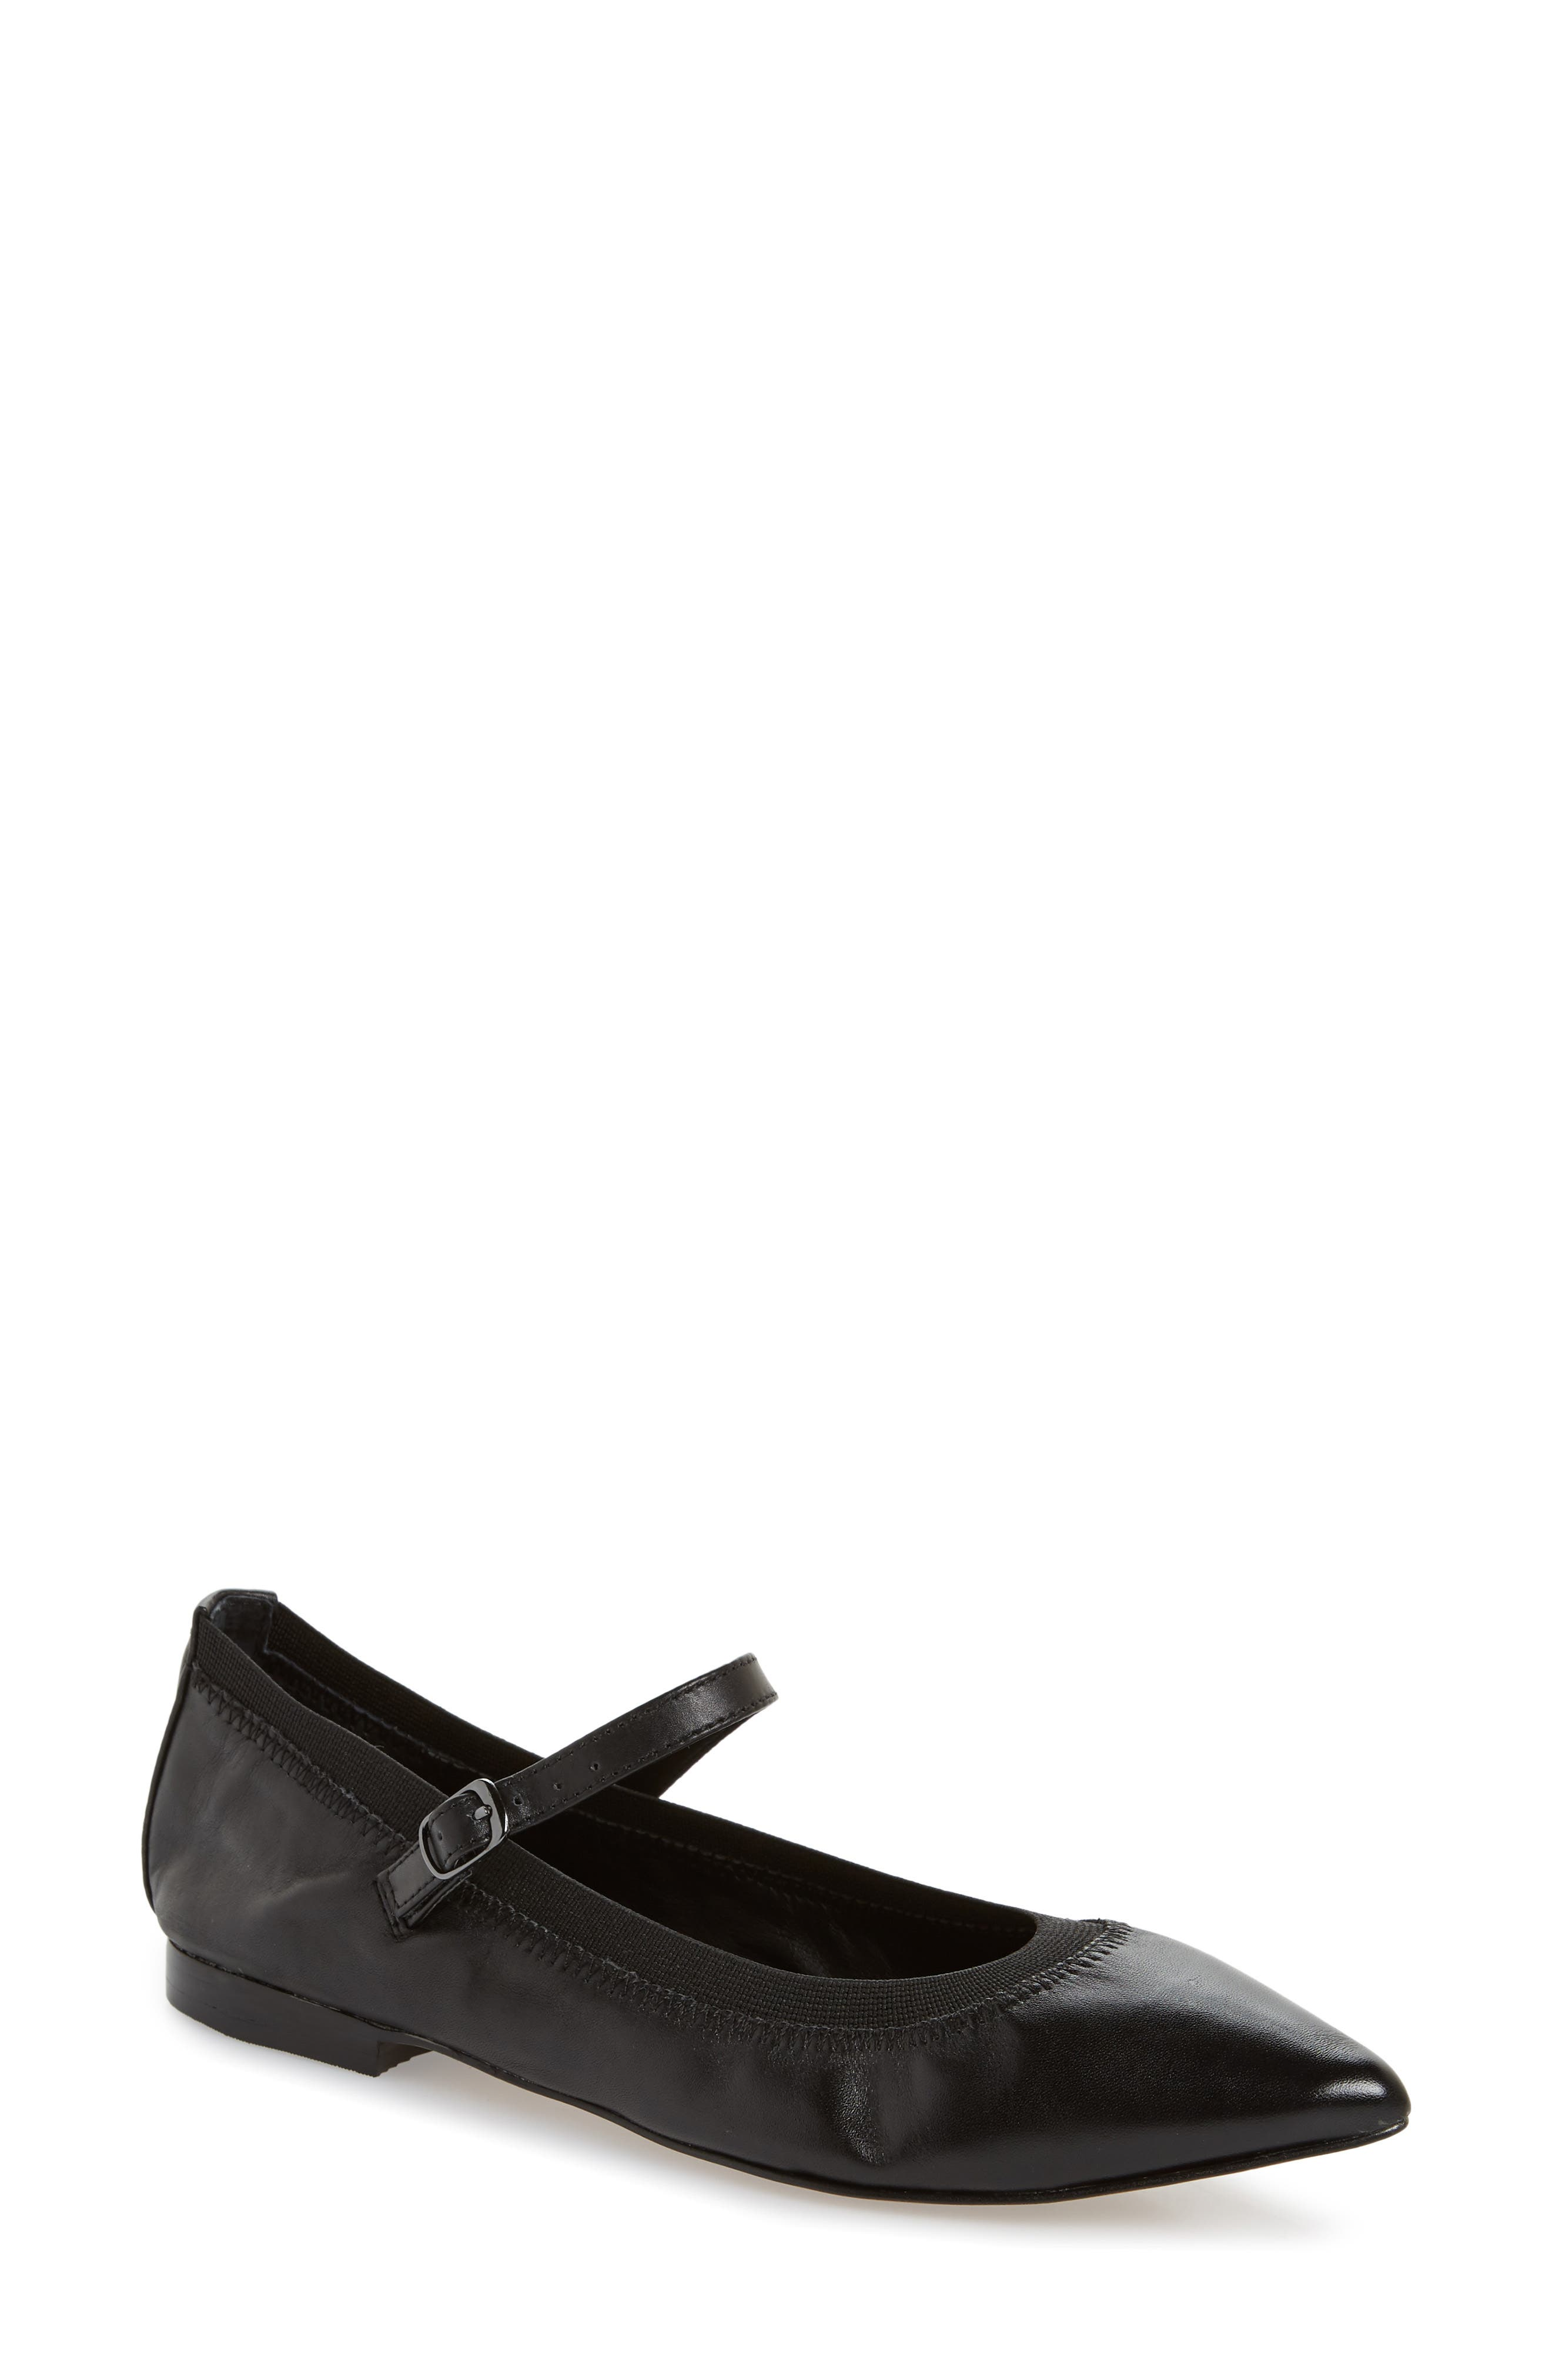 Isola Palleteri Pointy Toe Flat,                         Main,                         color, BLACK LEATHER